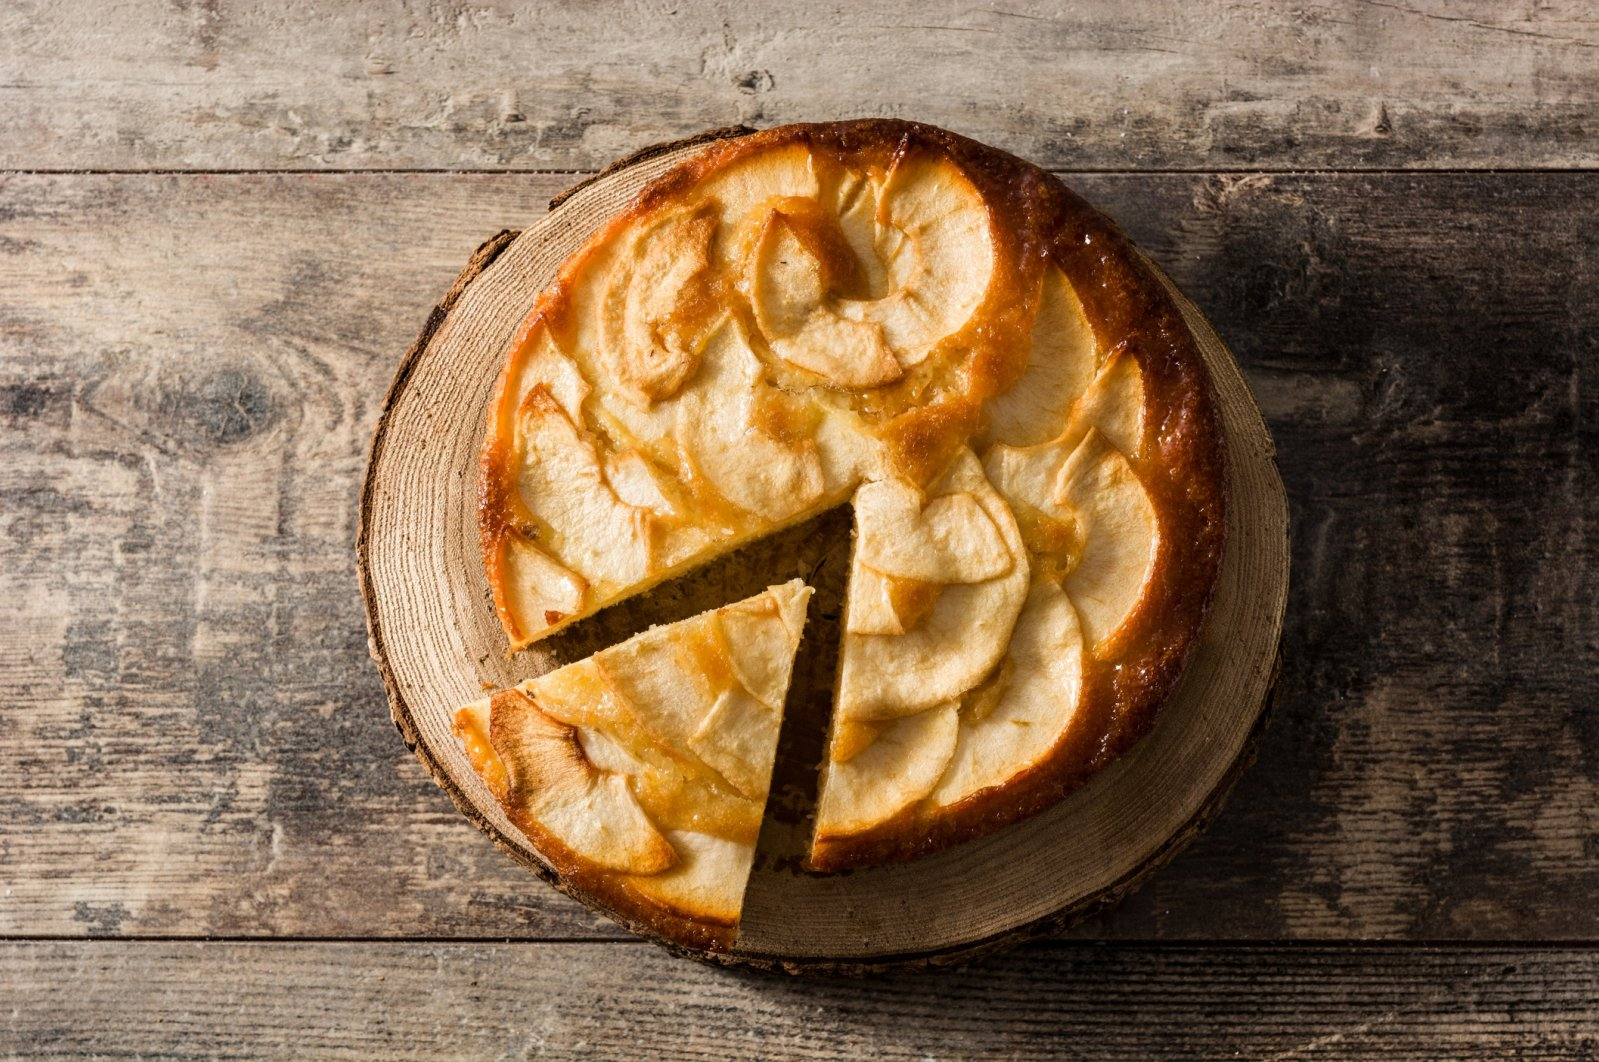 An apple cake is easier and less time-consuming than baking an intricate pie. (iStock Photo)